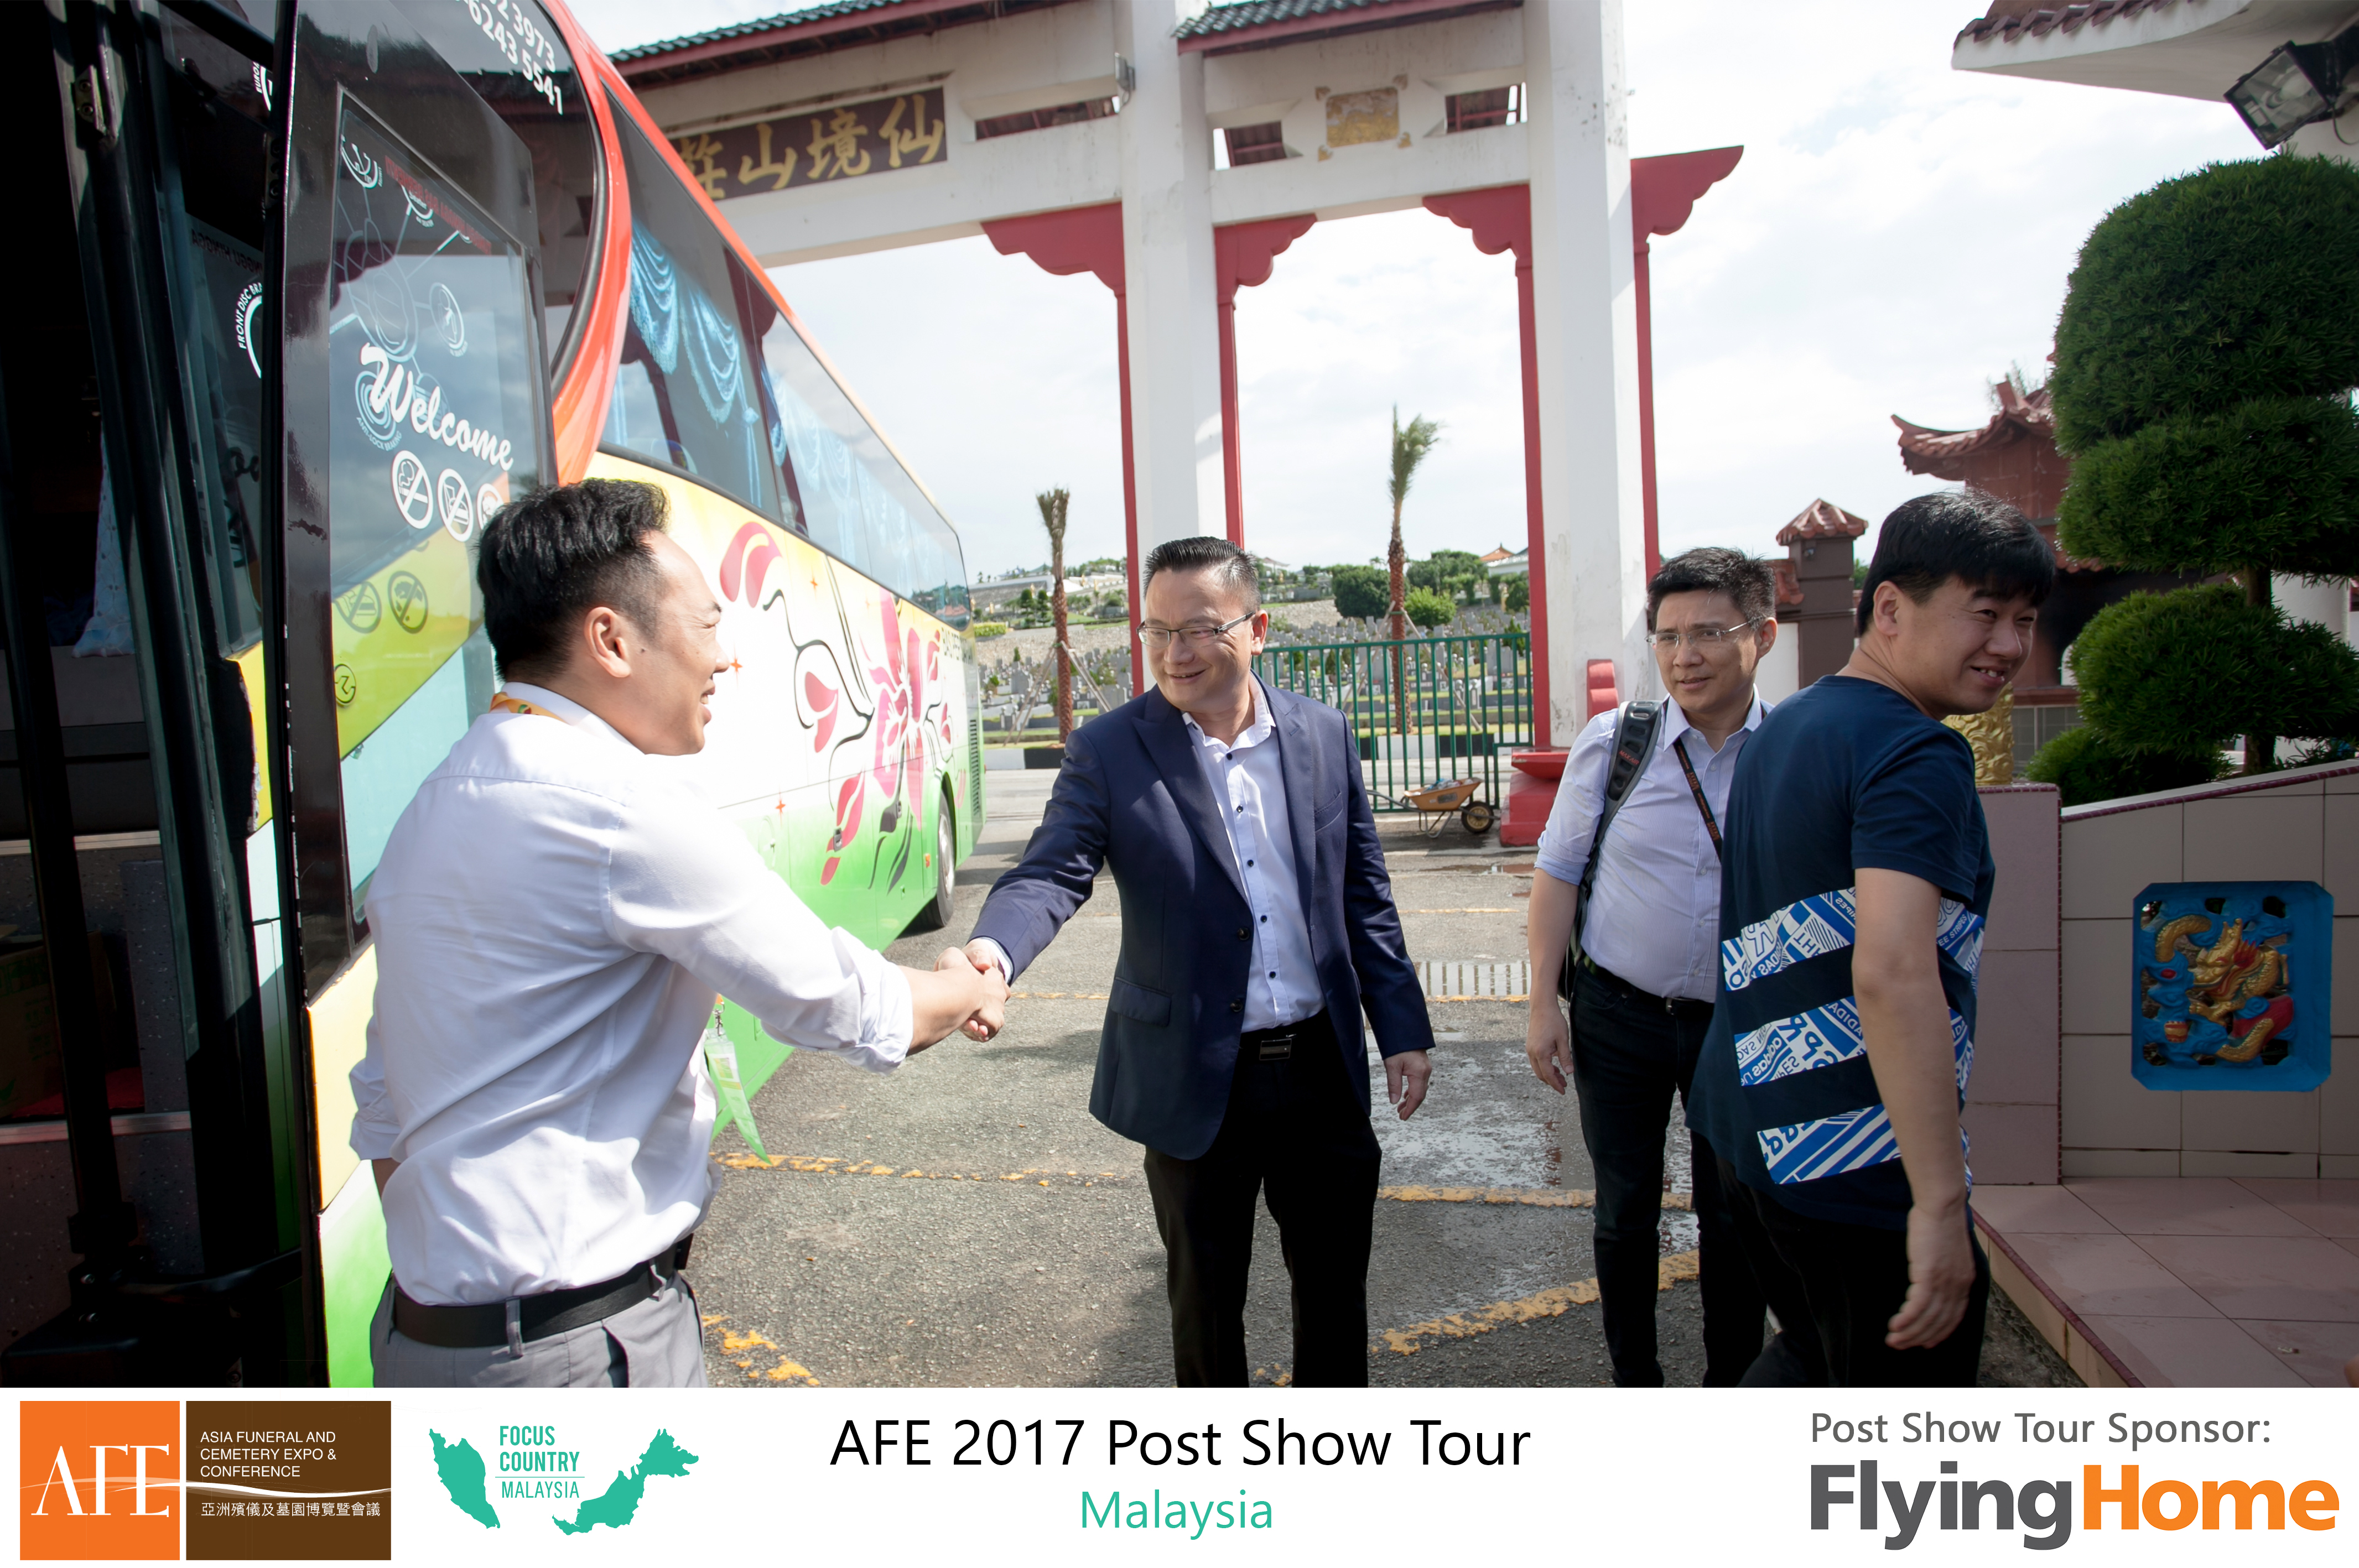 AFE Post Show Tour 2017 Day 4 - 35